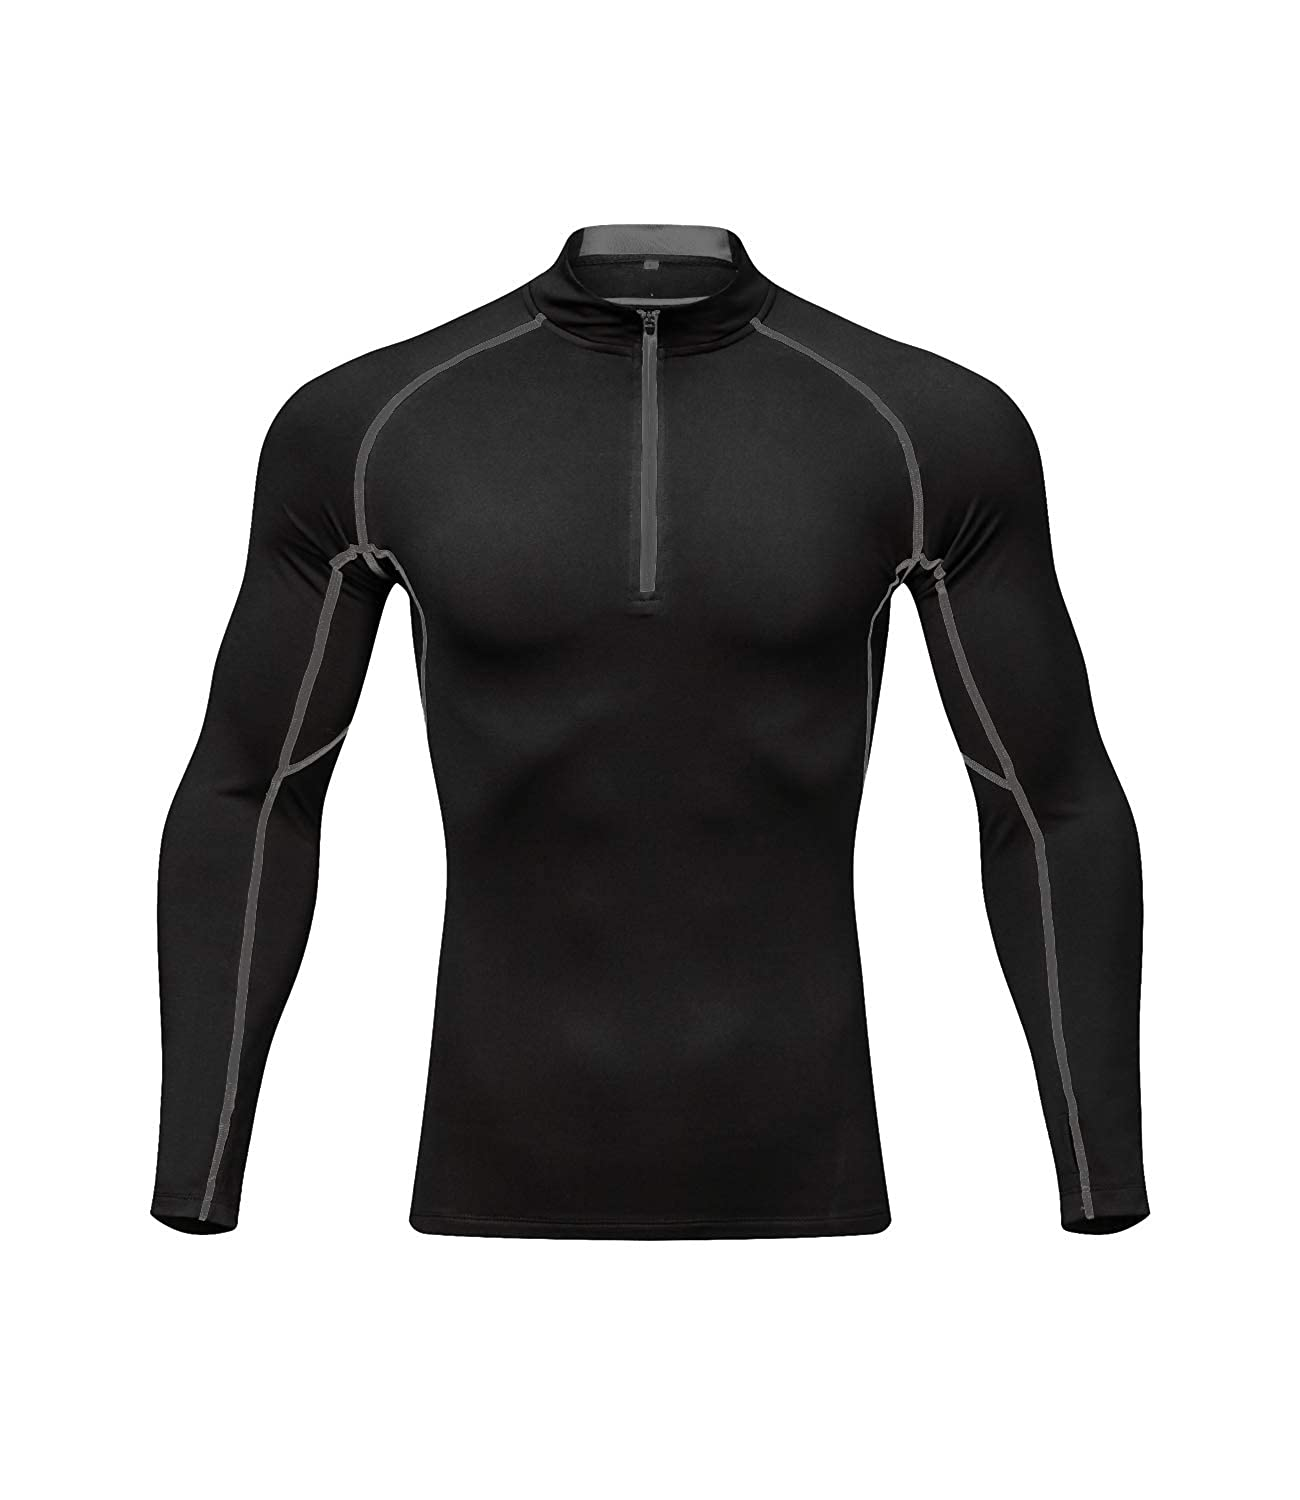 Outto Men's Thermal Underwear Fleece Lined Midweight Baselayer Layered Shirt 1/4 Zip Neck Top